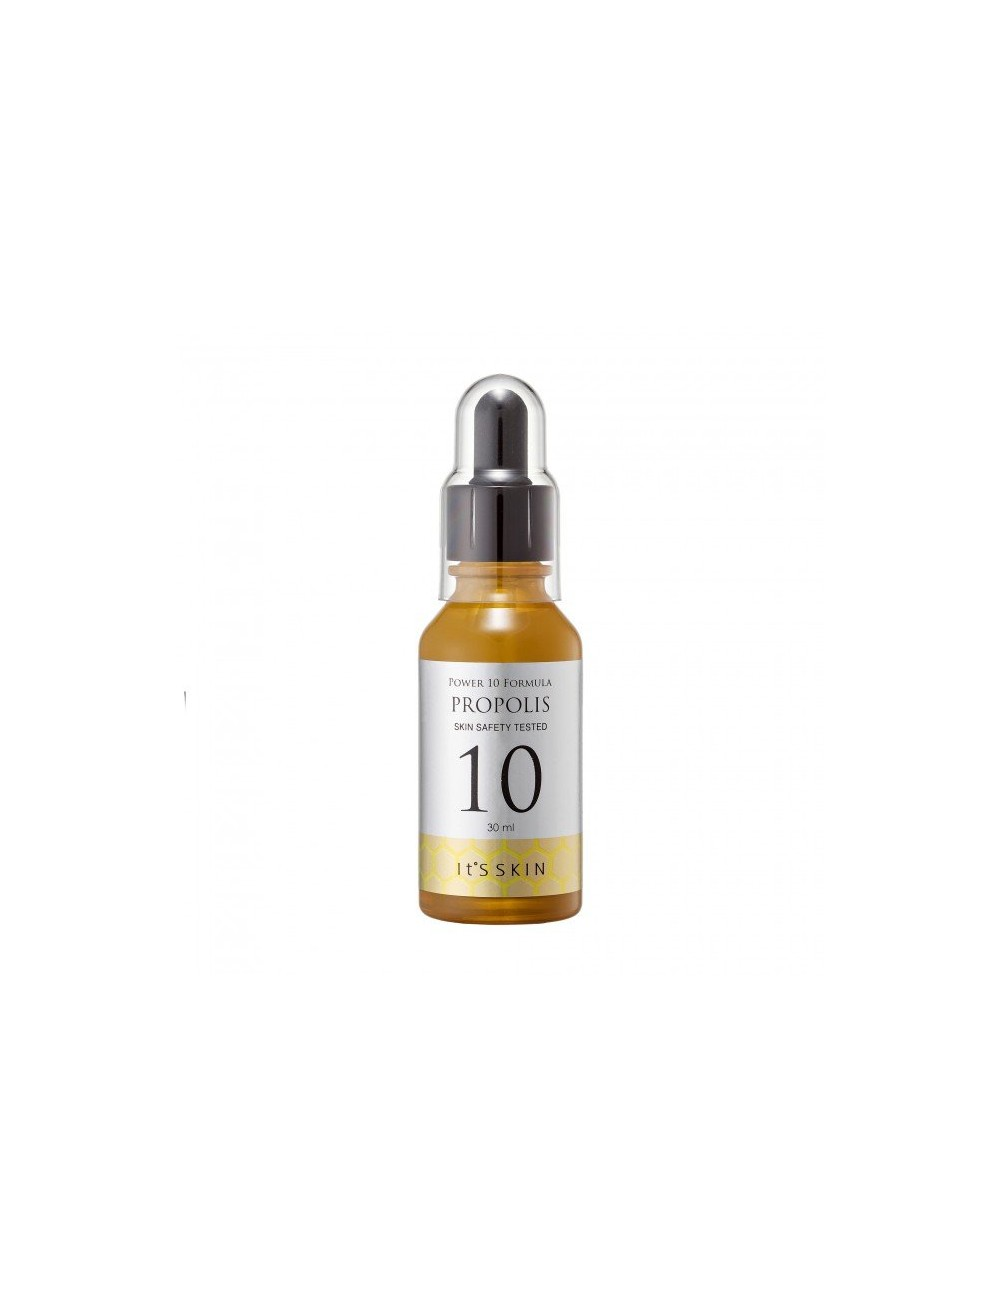 Serum para Piel Sensible It´s Skin Power 10 Formula Propolis